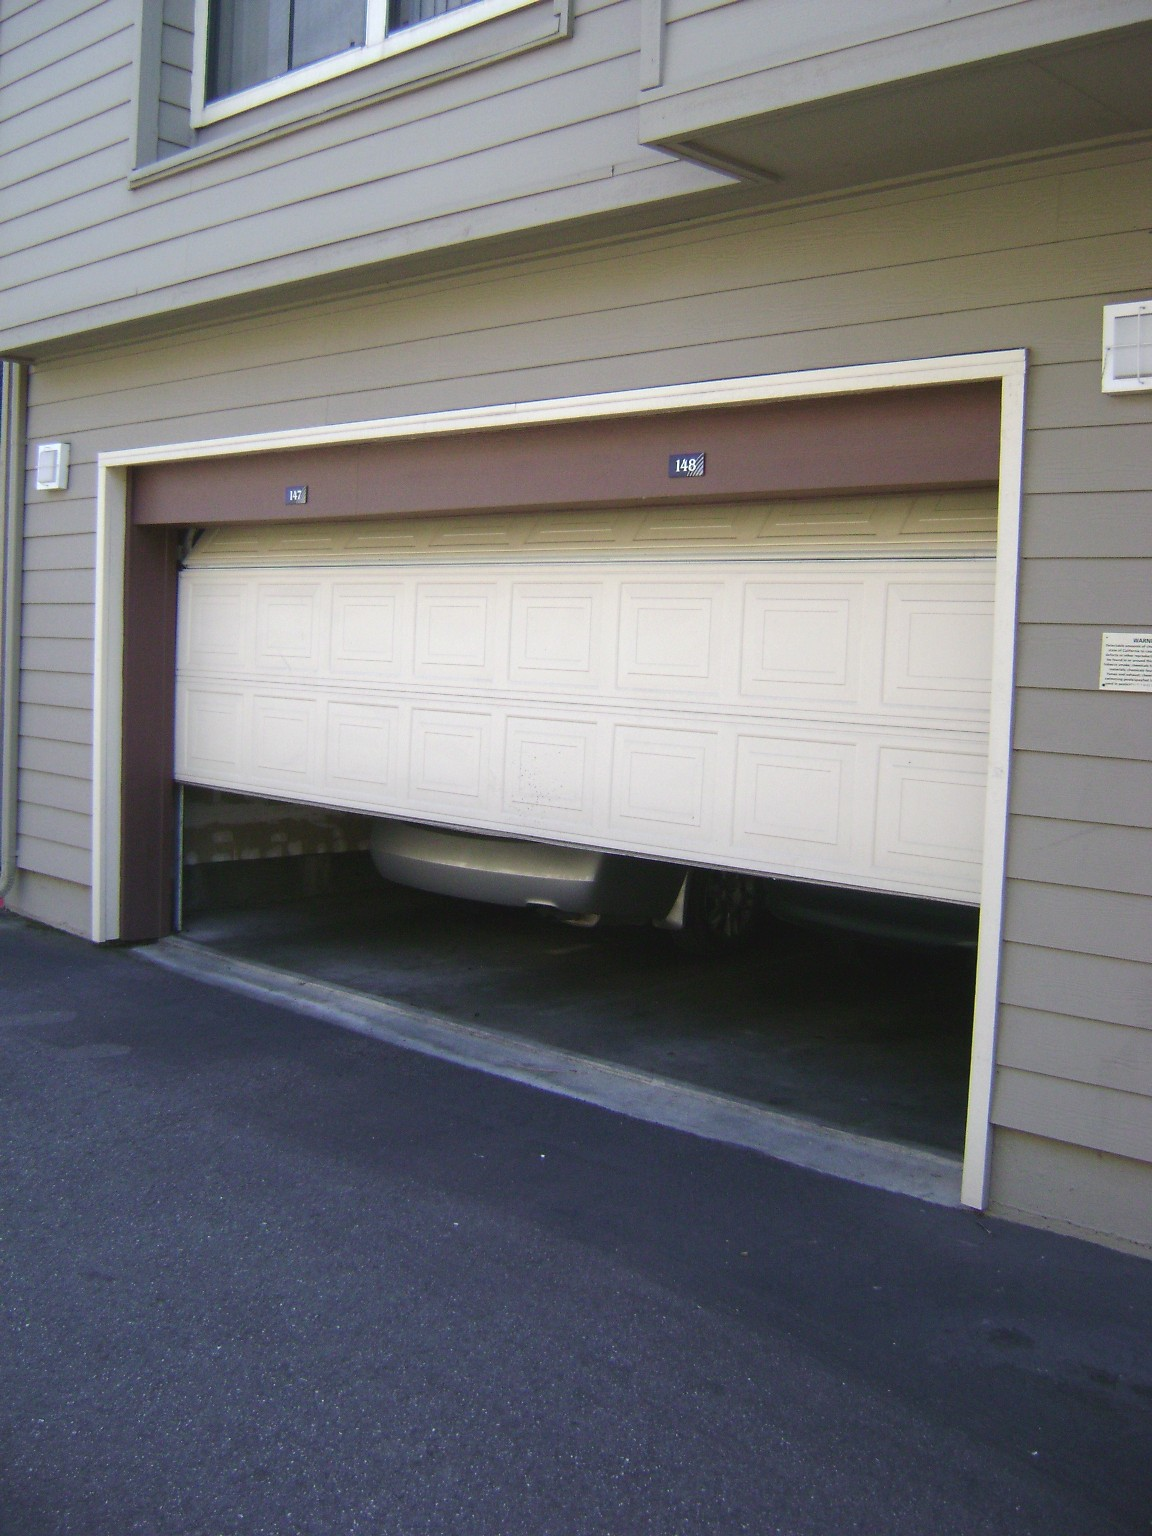 & Garage door - Wikipedia pezcame.com